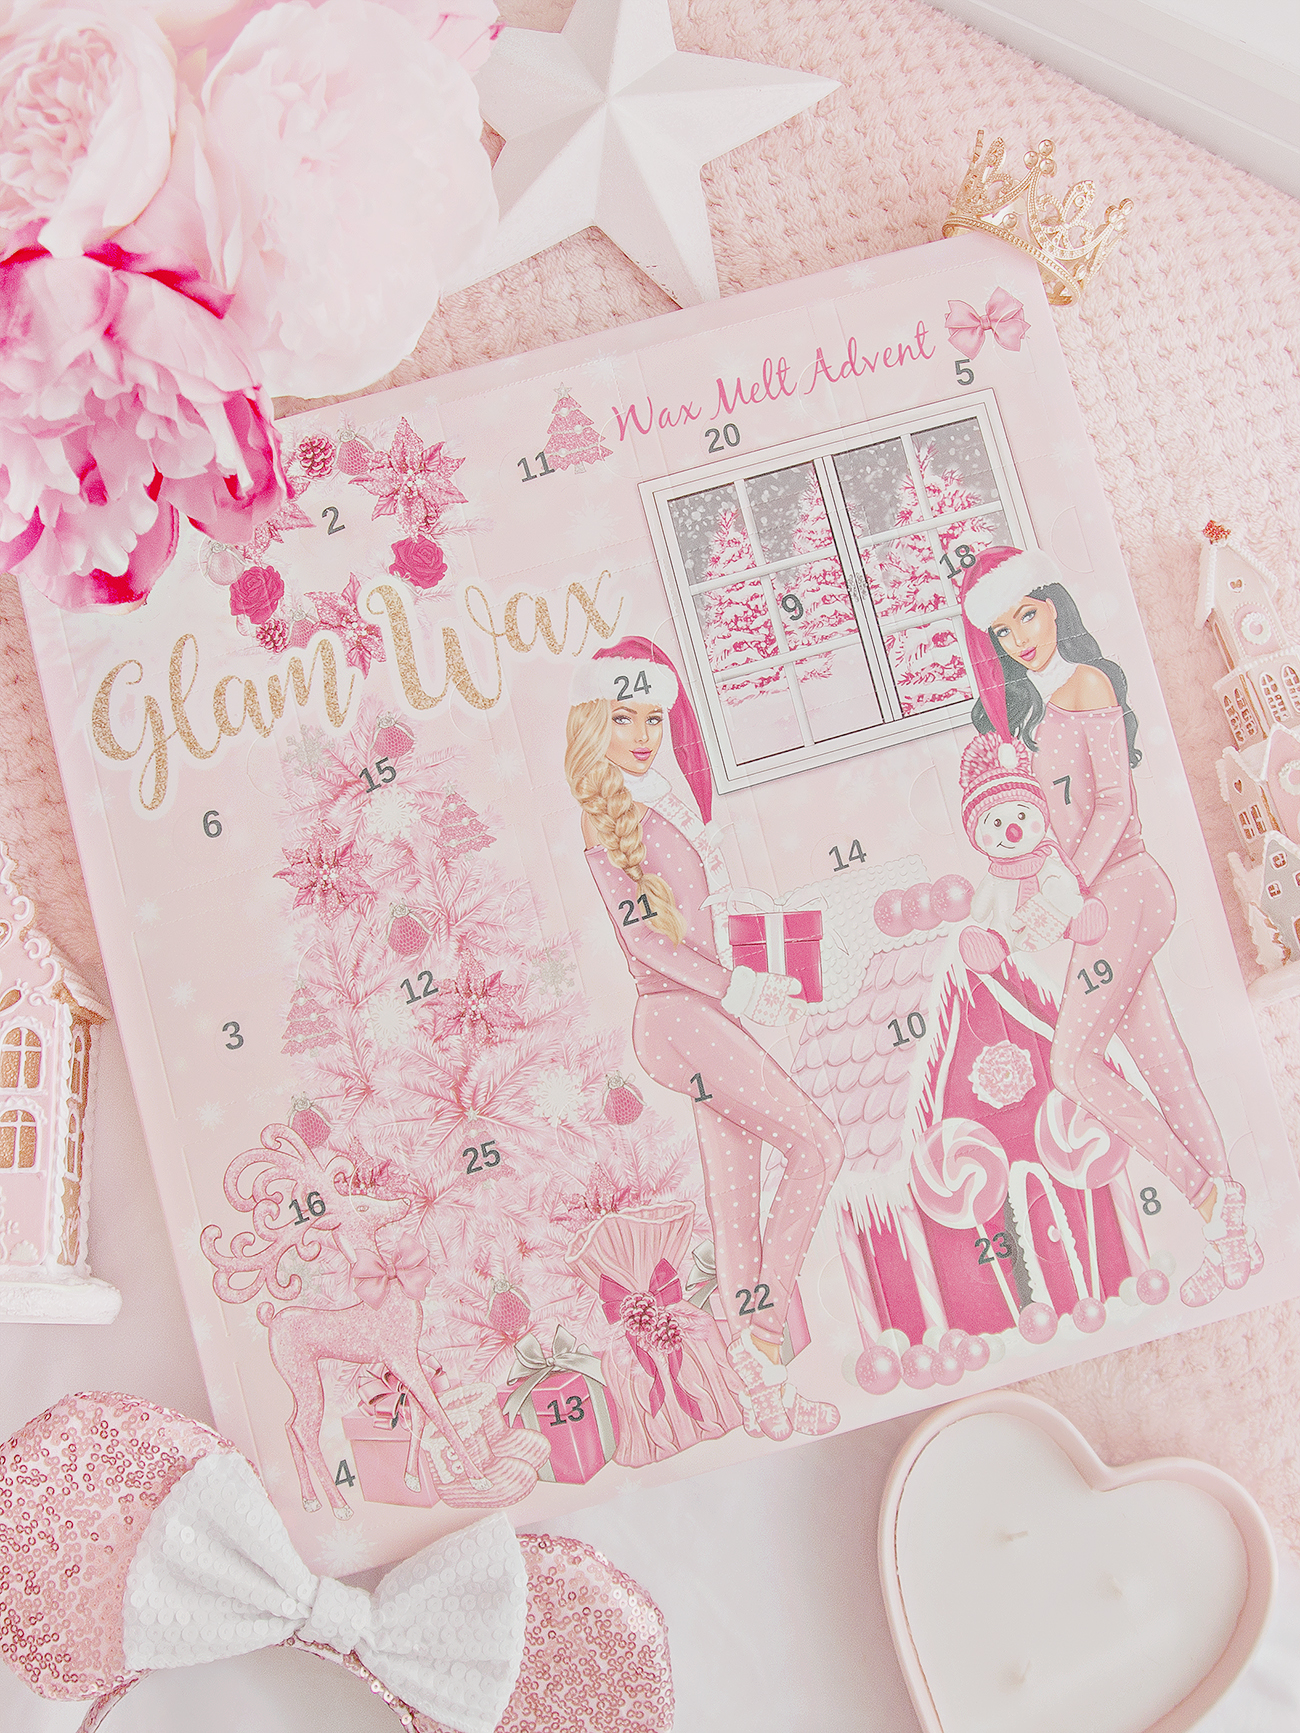 Photo of Glam Wax advent calendar on pink background